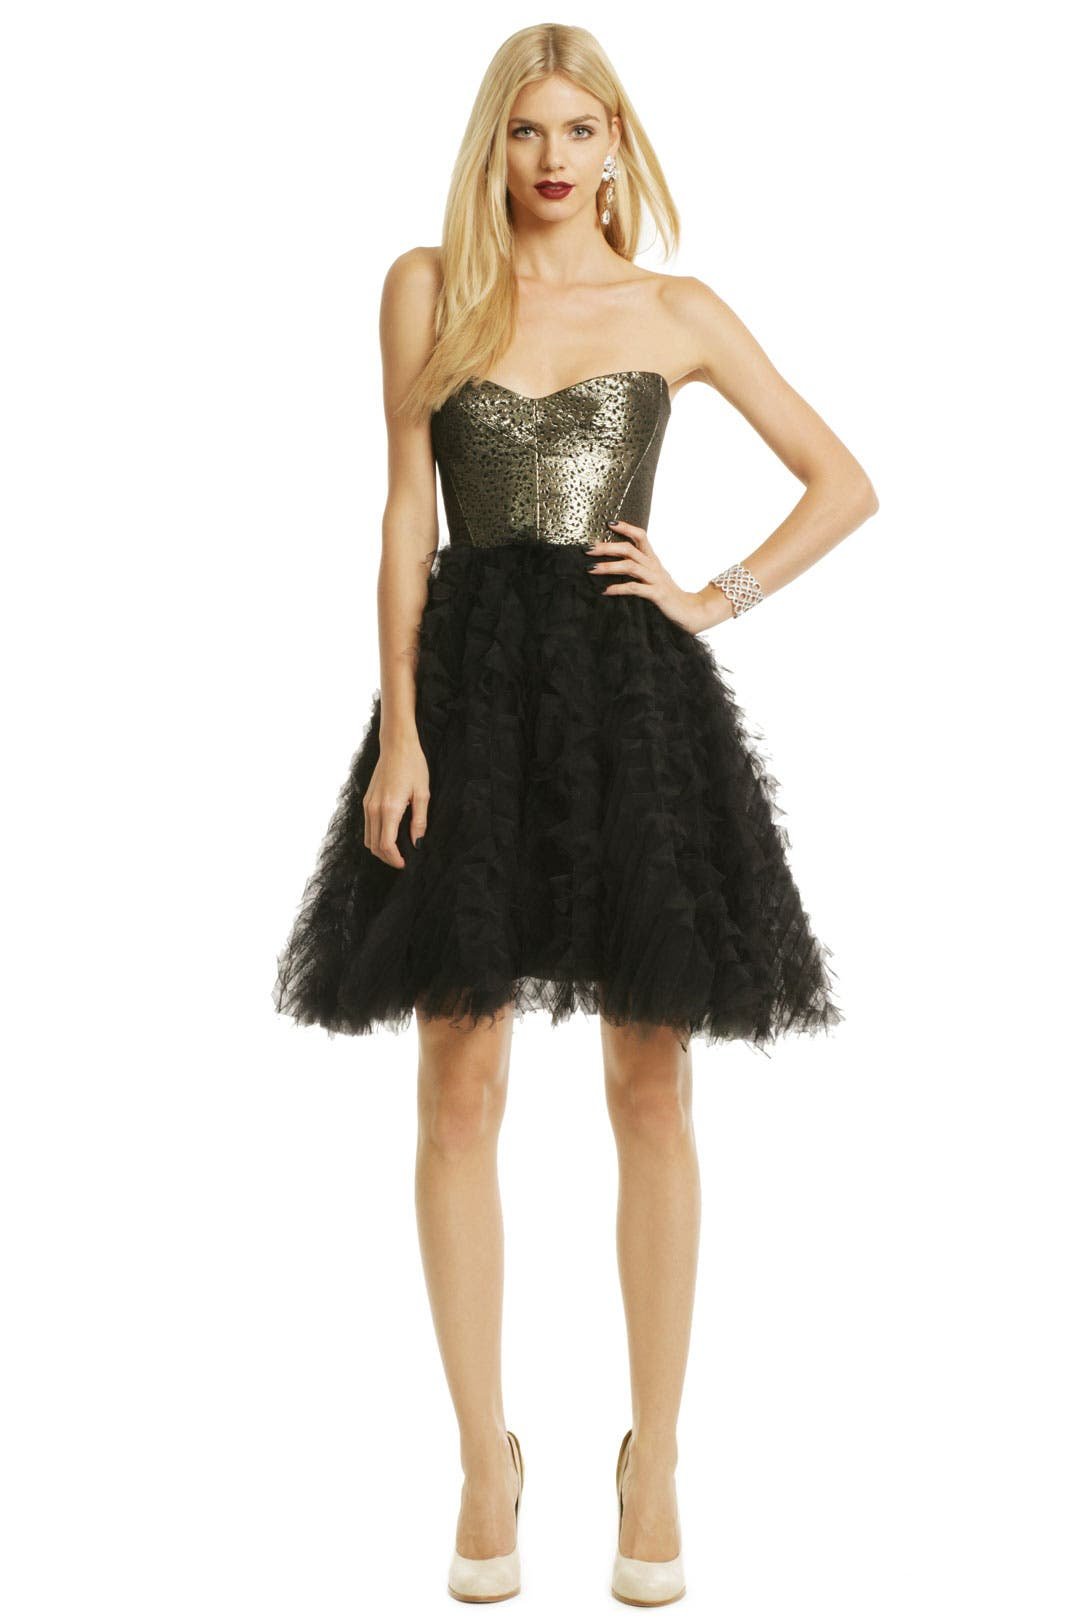 Can't Be Tamed Dress by Christian Siriano